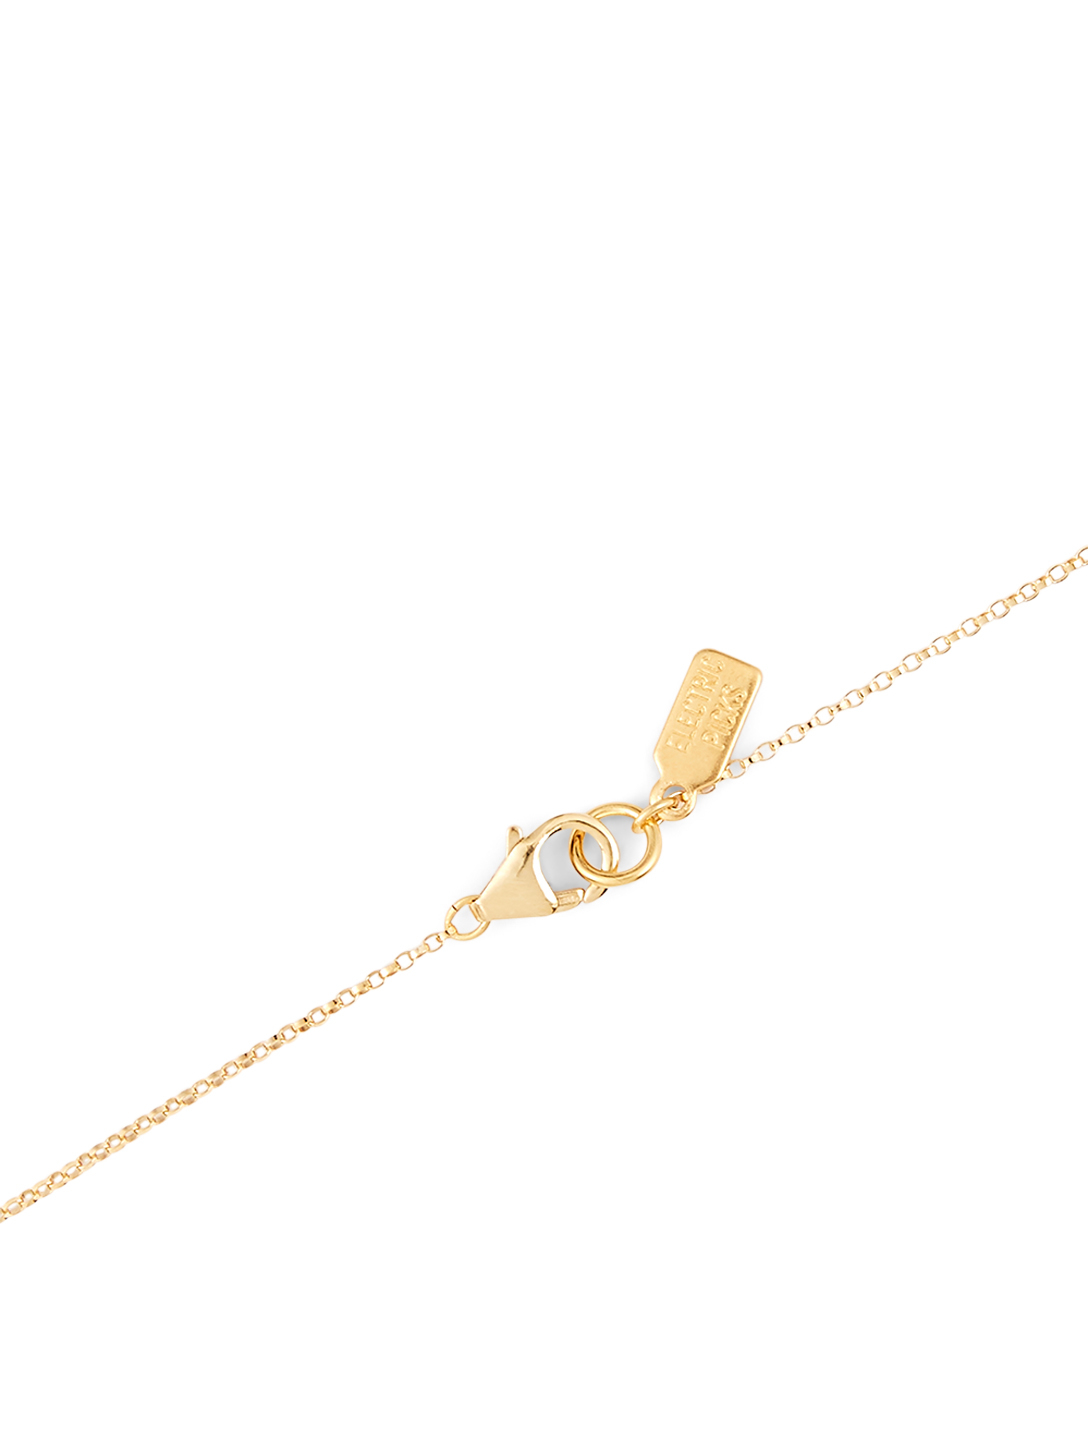 ELECTRIC PICKS Love Letter 14K Gold Filled T Necklace Women's Metallic